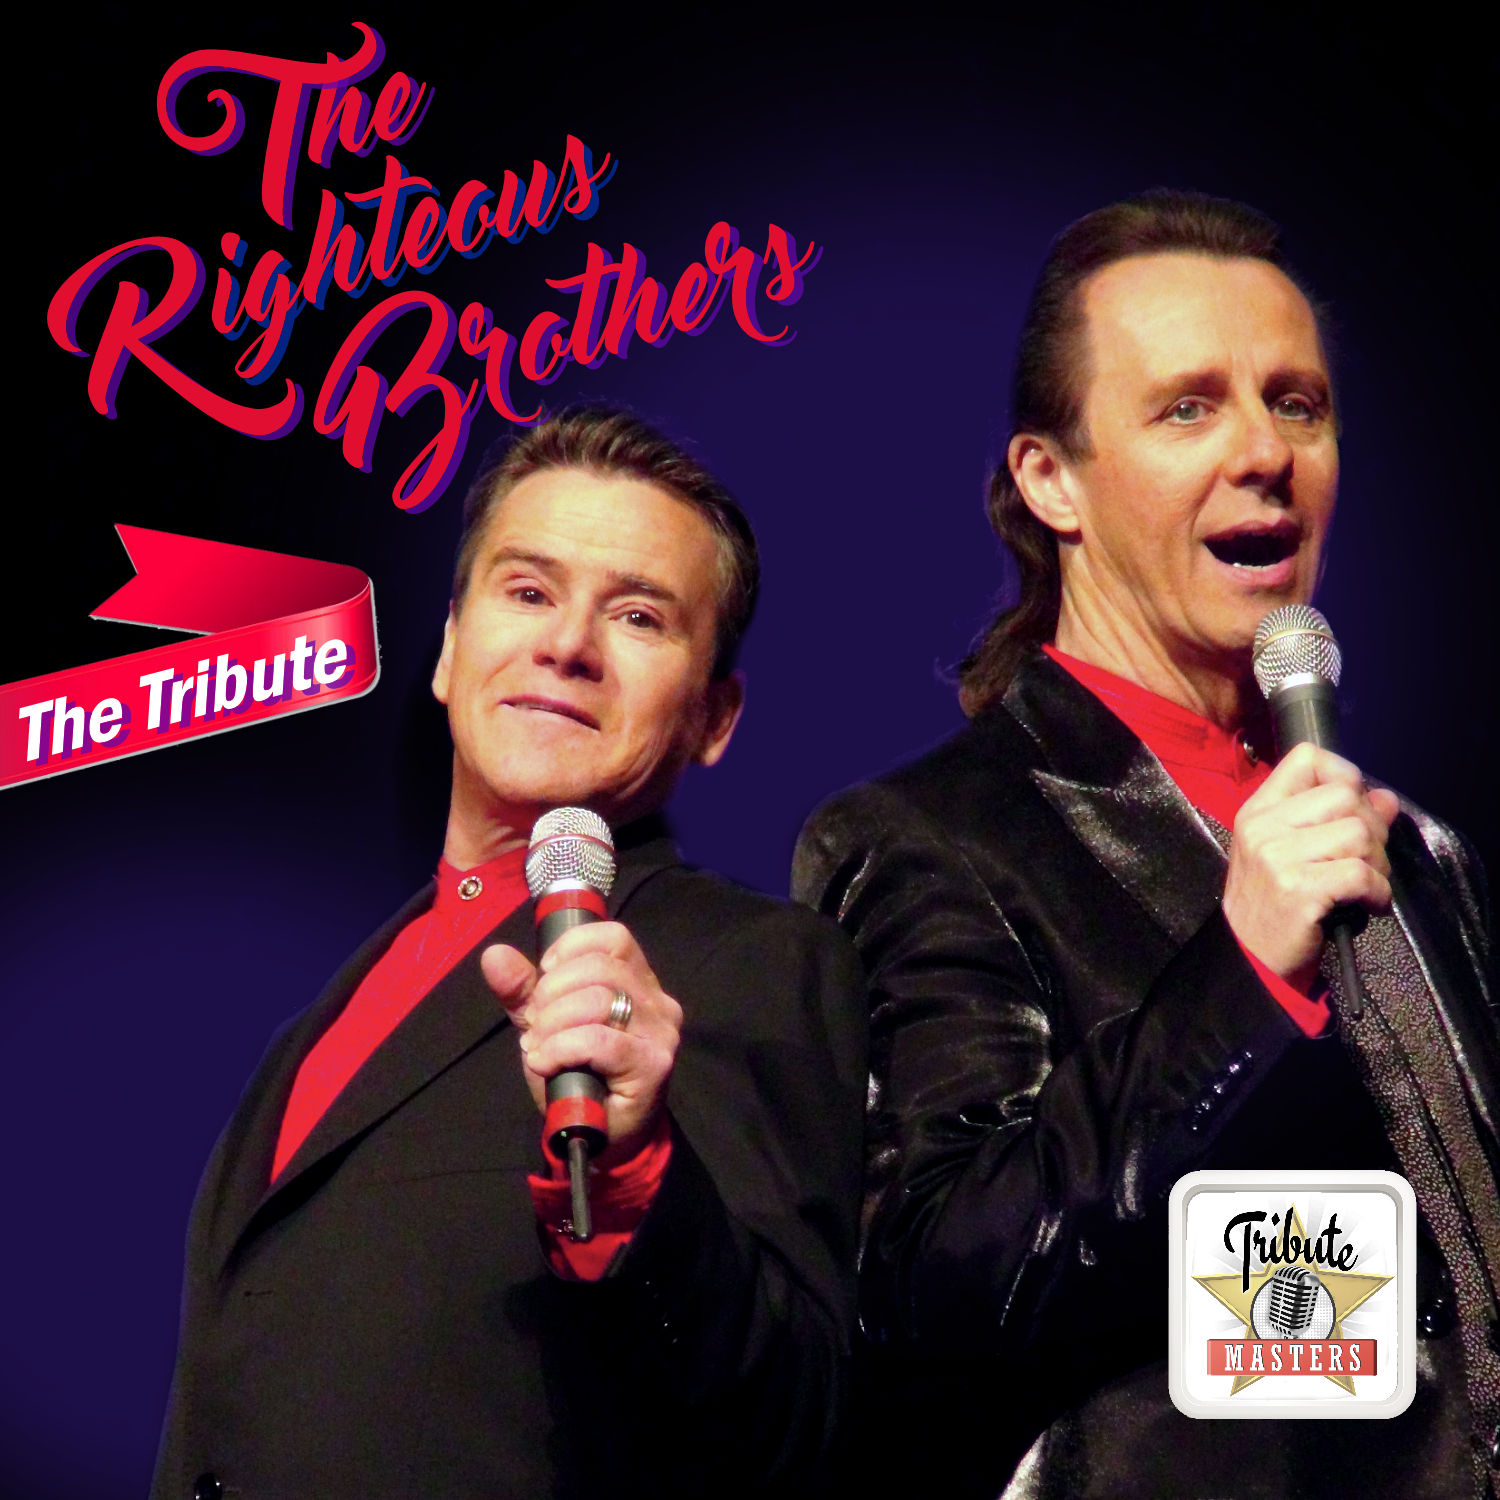 The Righteous Brothers - A Tribute